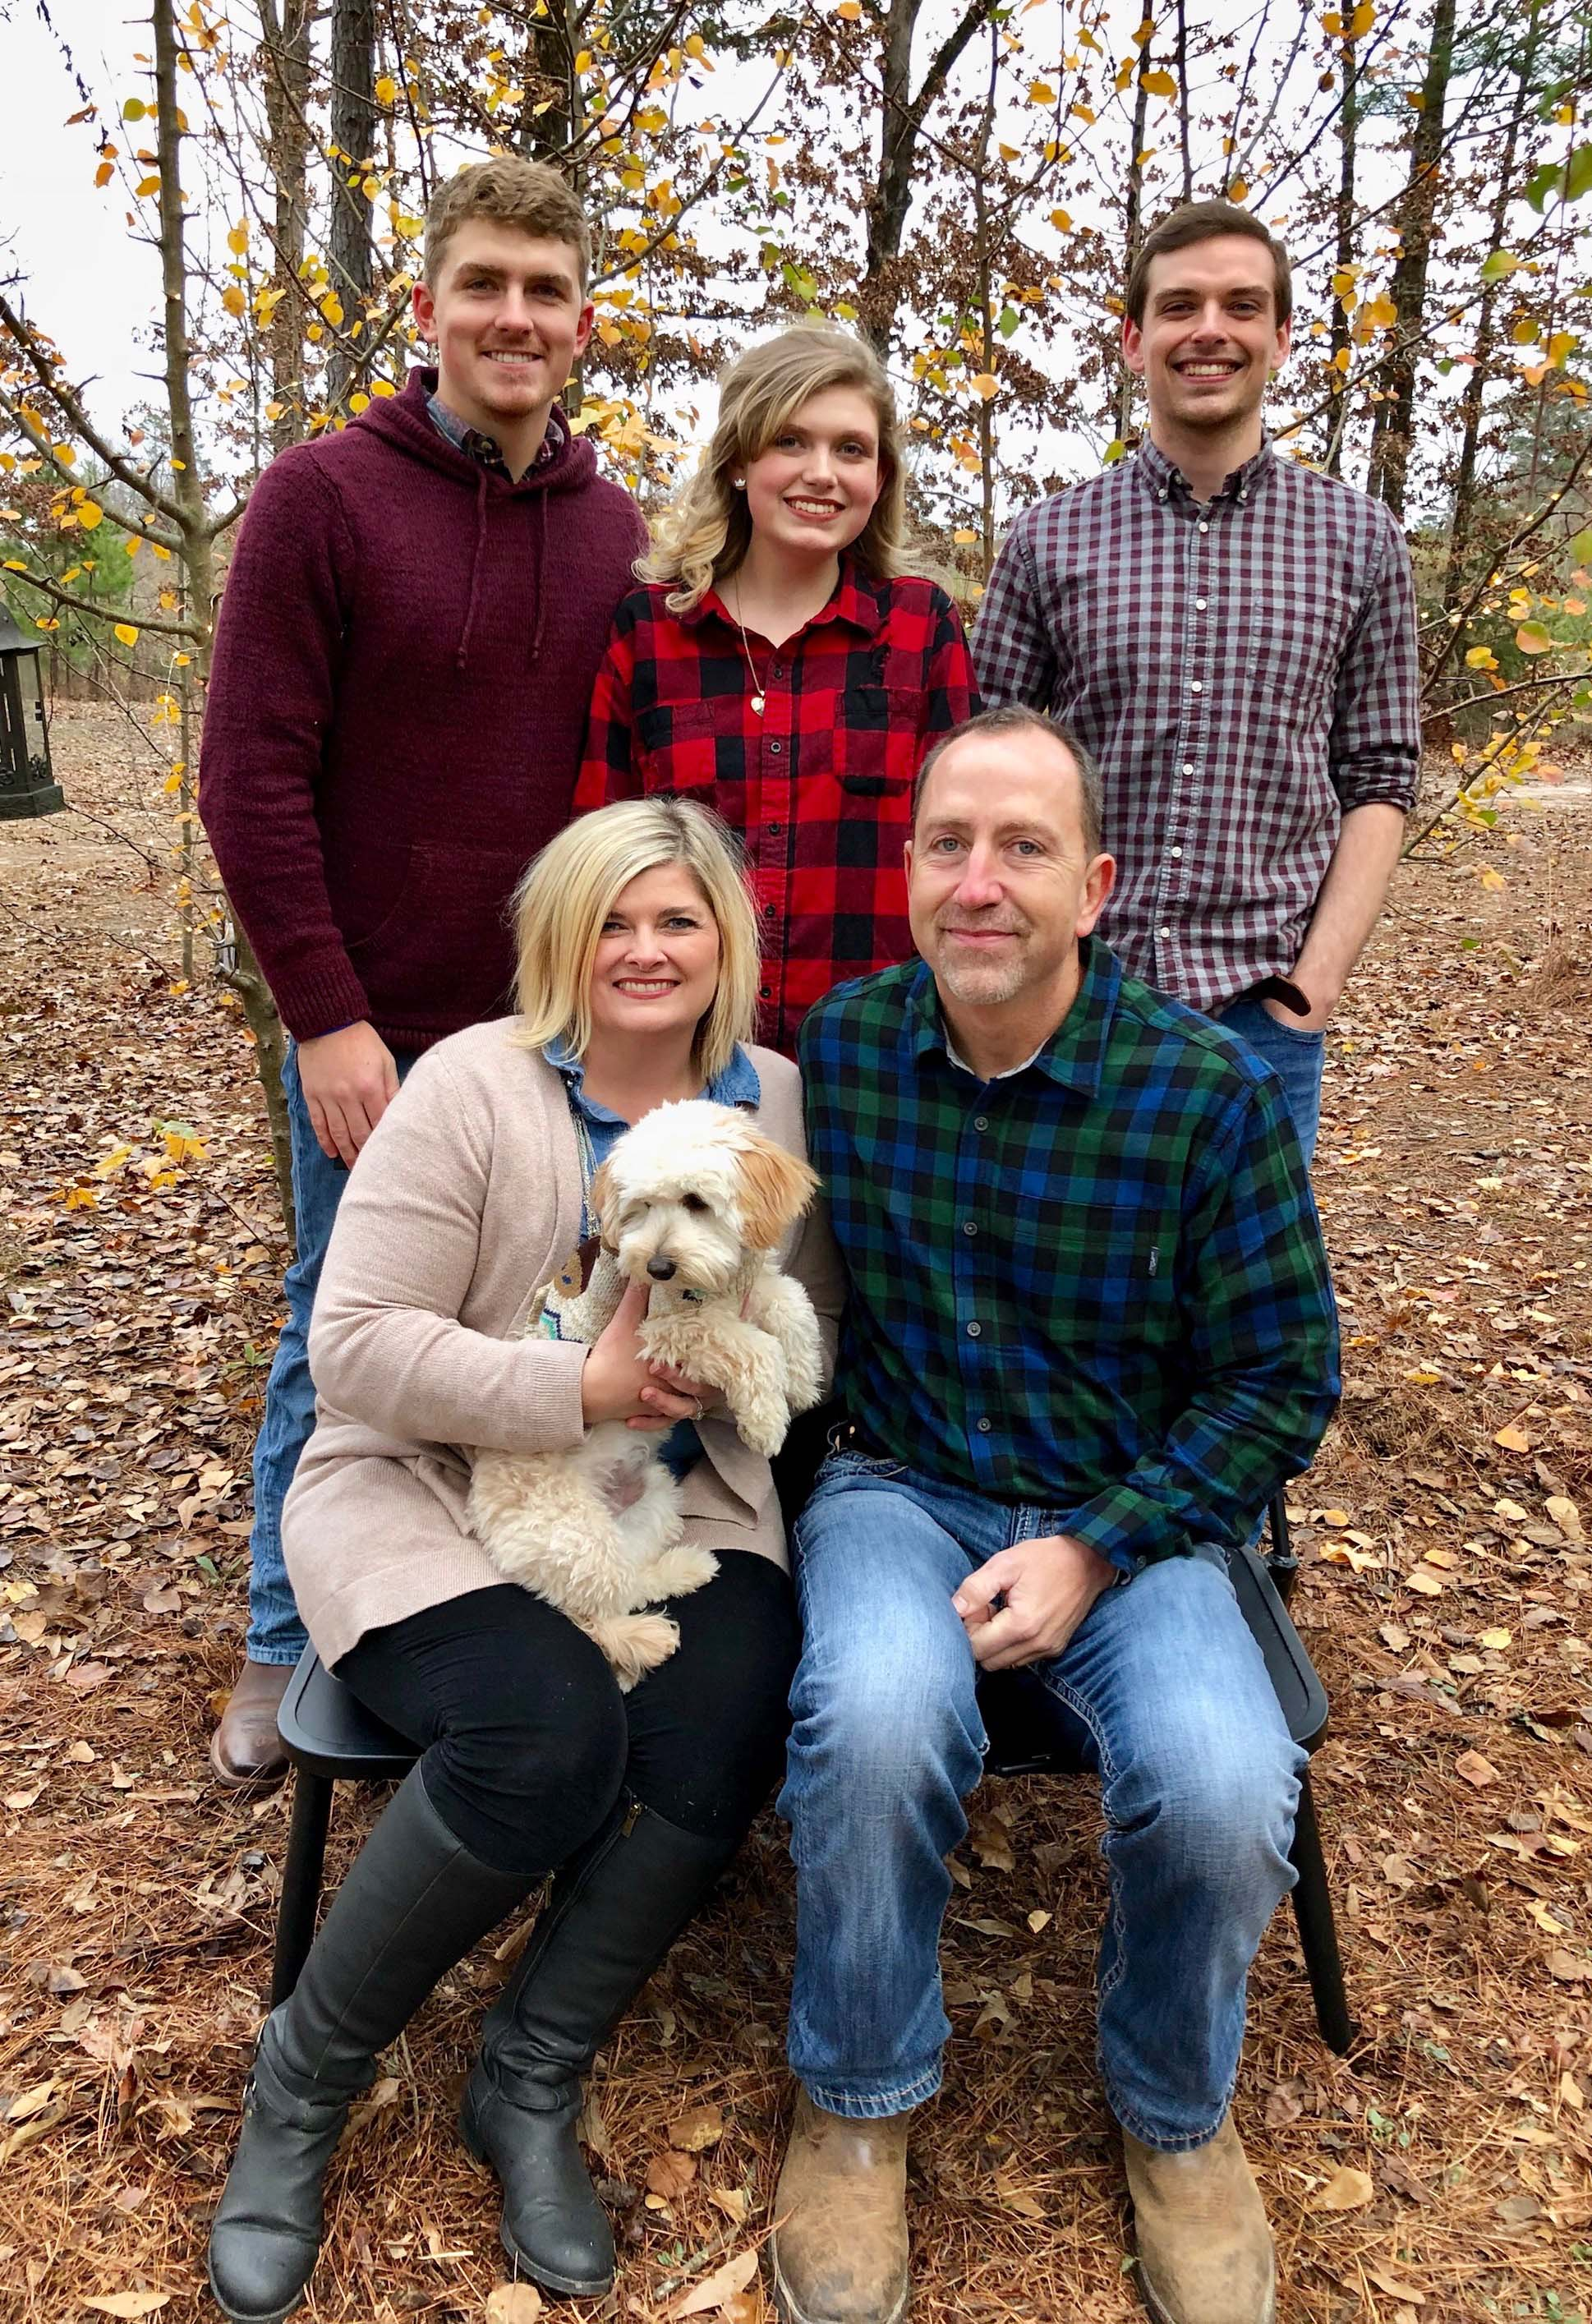 """Last Christmas, Kim and Scott celebrated the holiday with their children, Micah, Olivia, and Aaron, and their puppy, """"Charlie."""""""